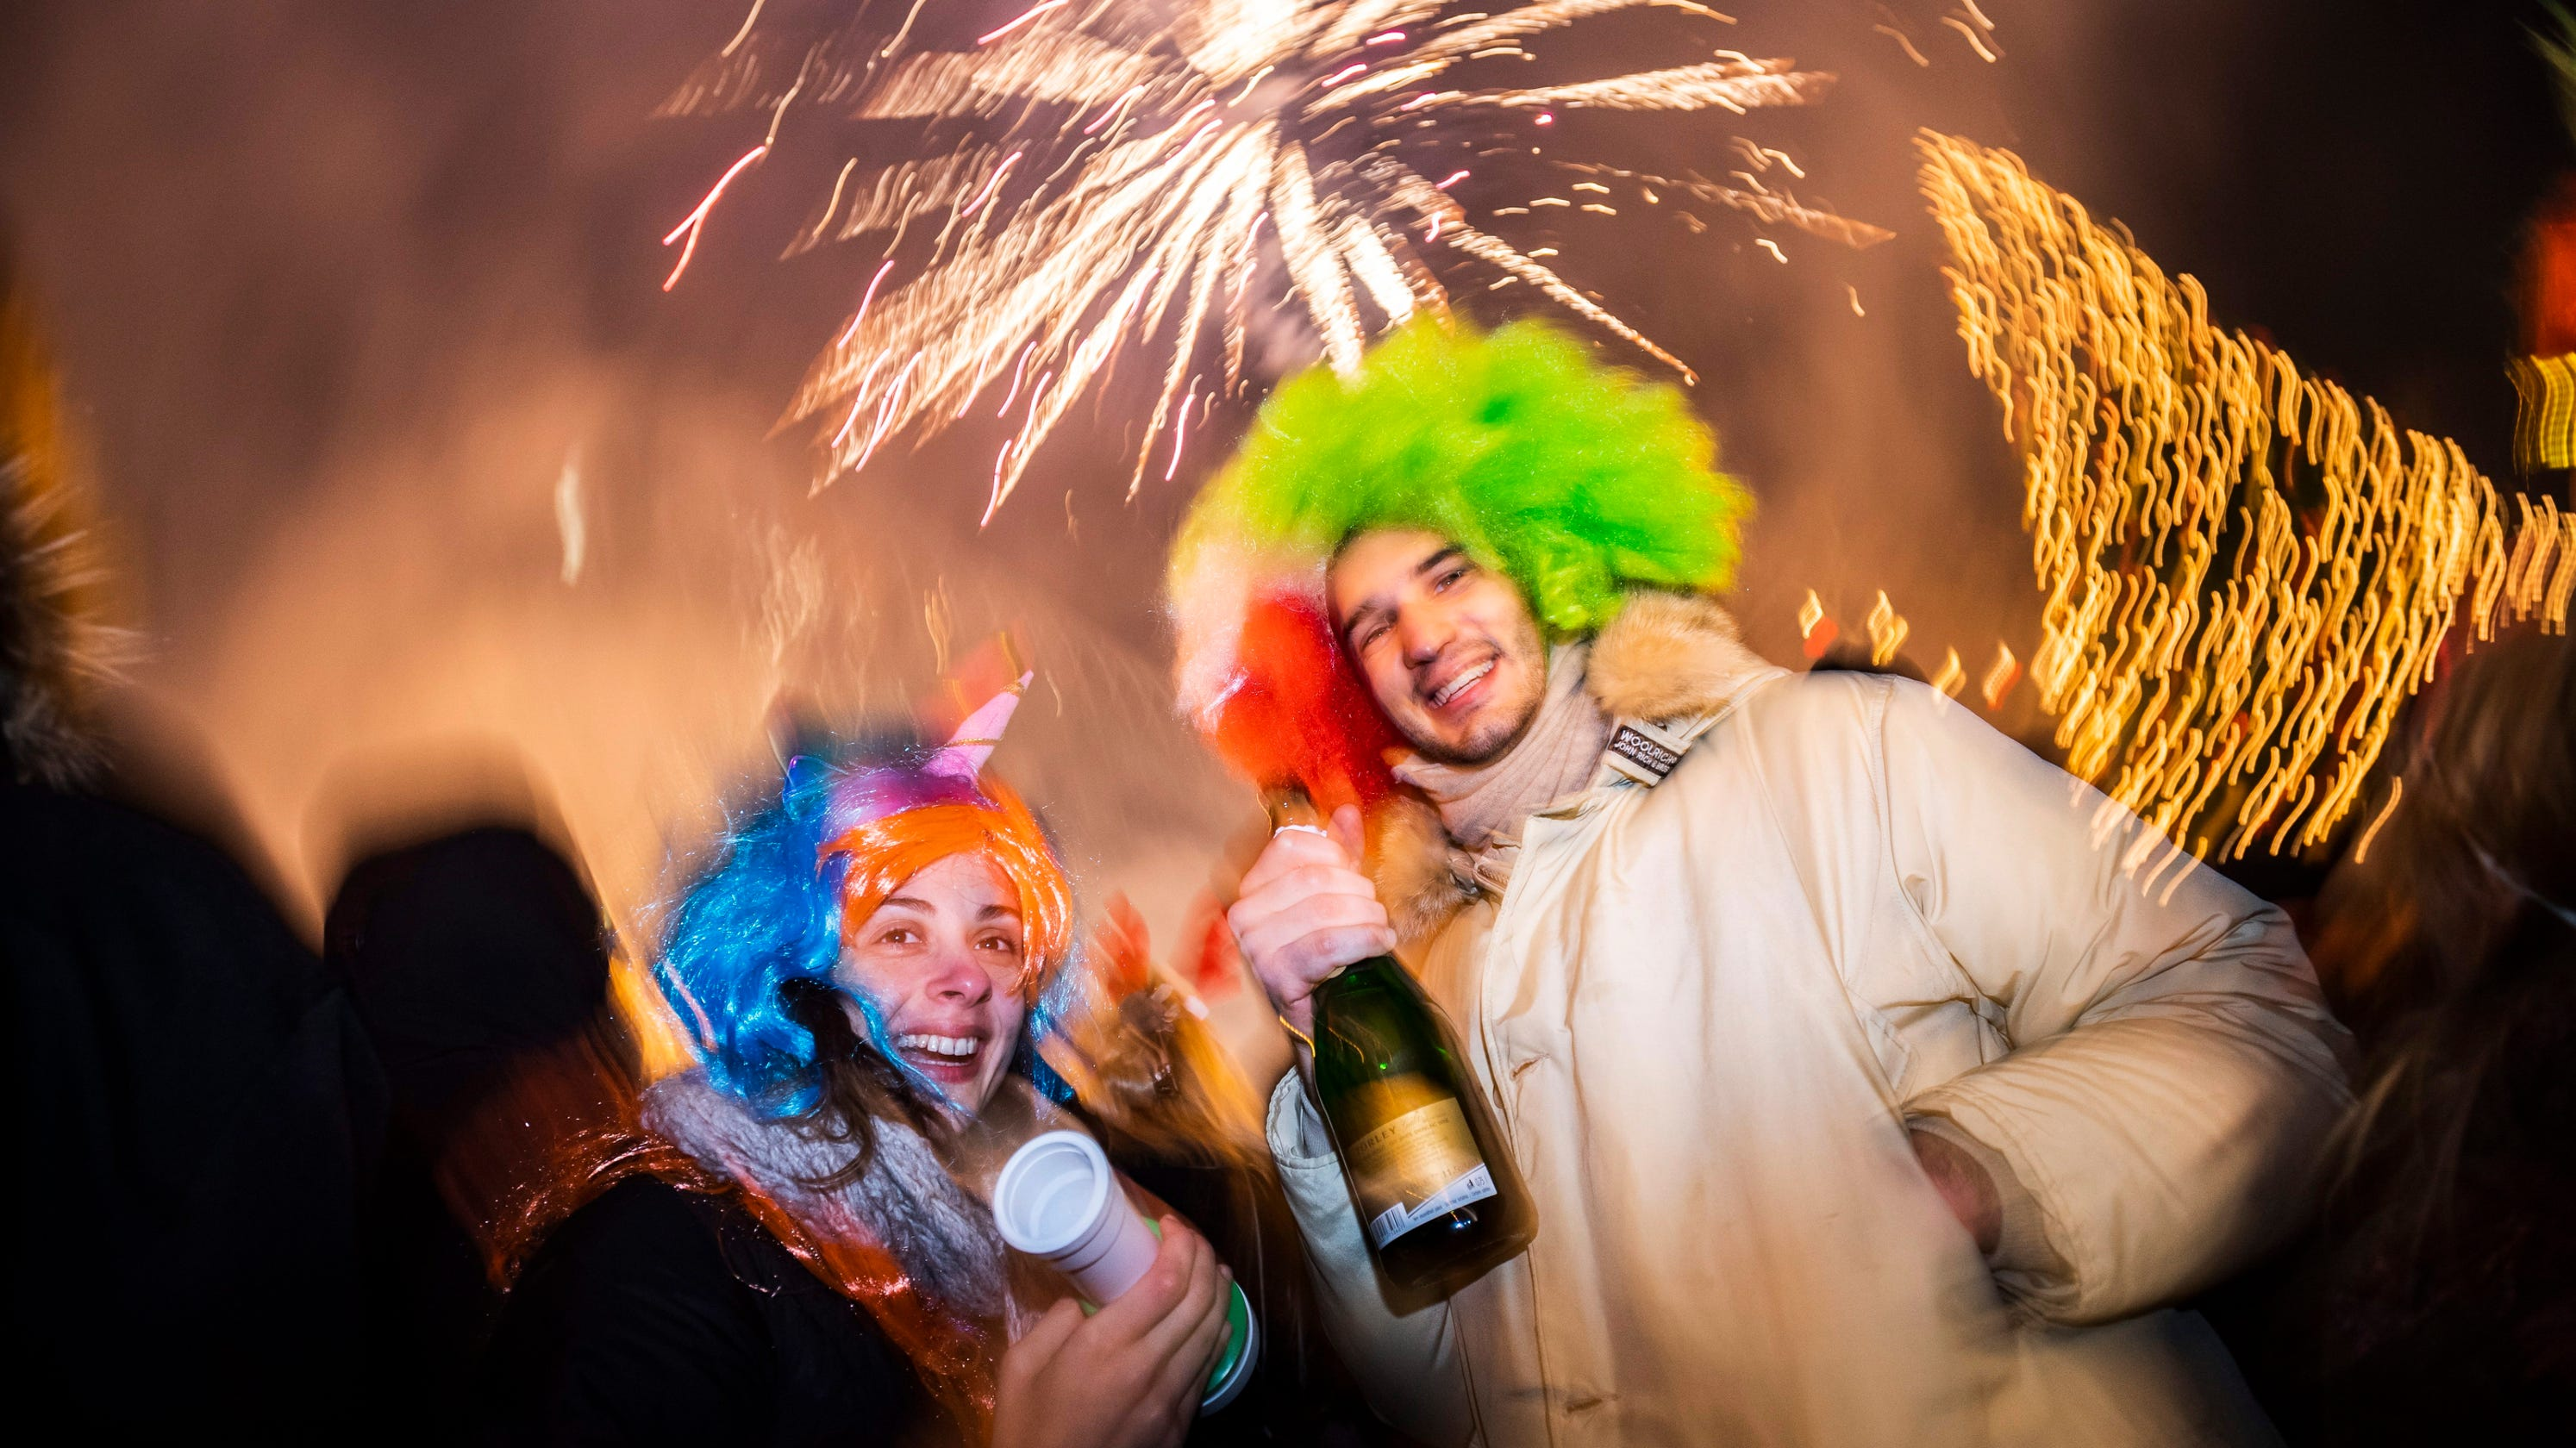 Welcome 2019: New Year's Eve celebrations around the world